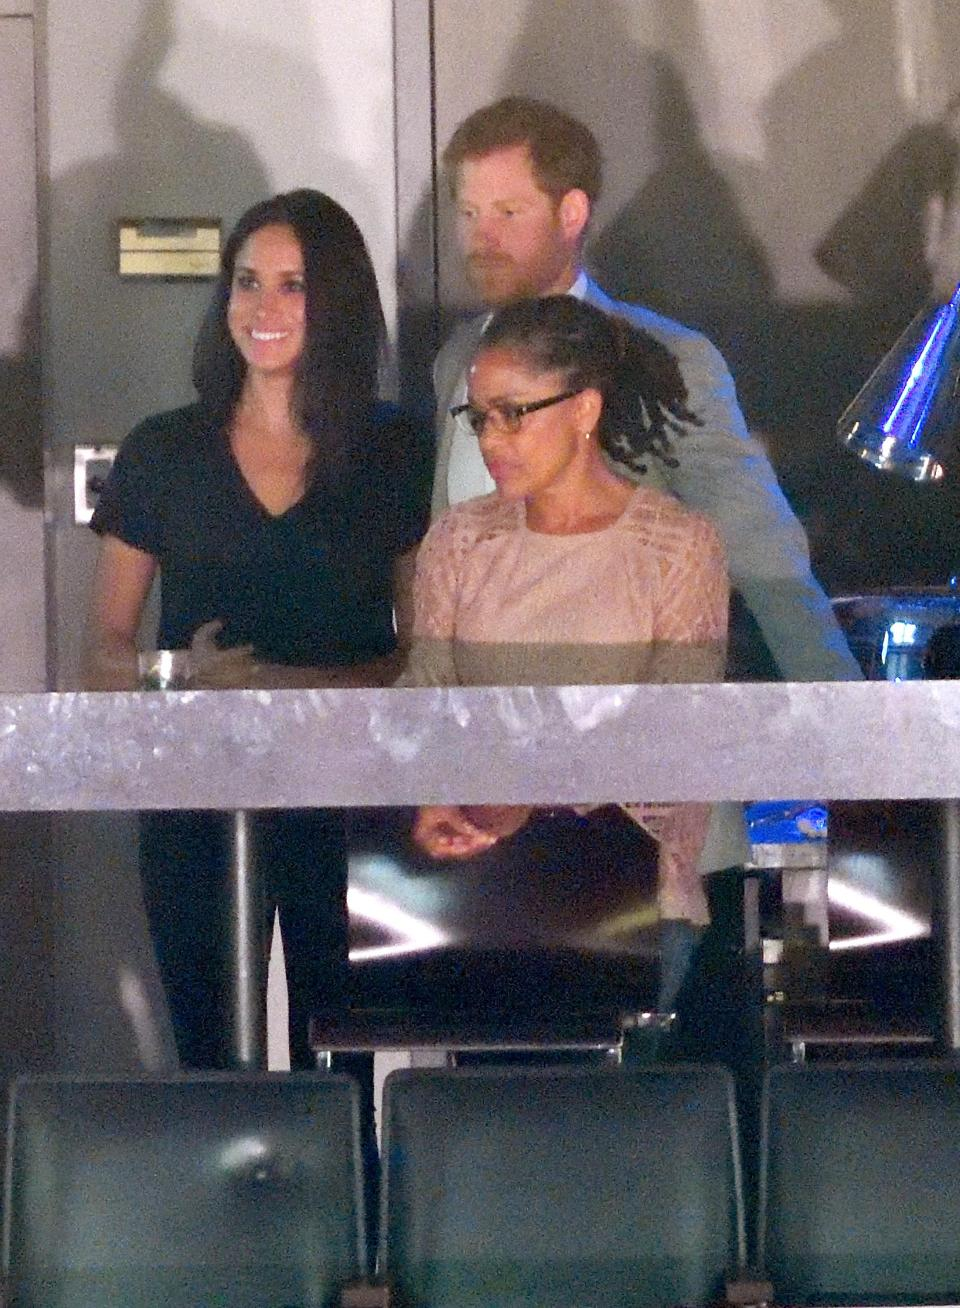 Meghan wore trousers while attending the Invictus Games with Harry and her mum